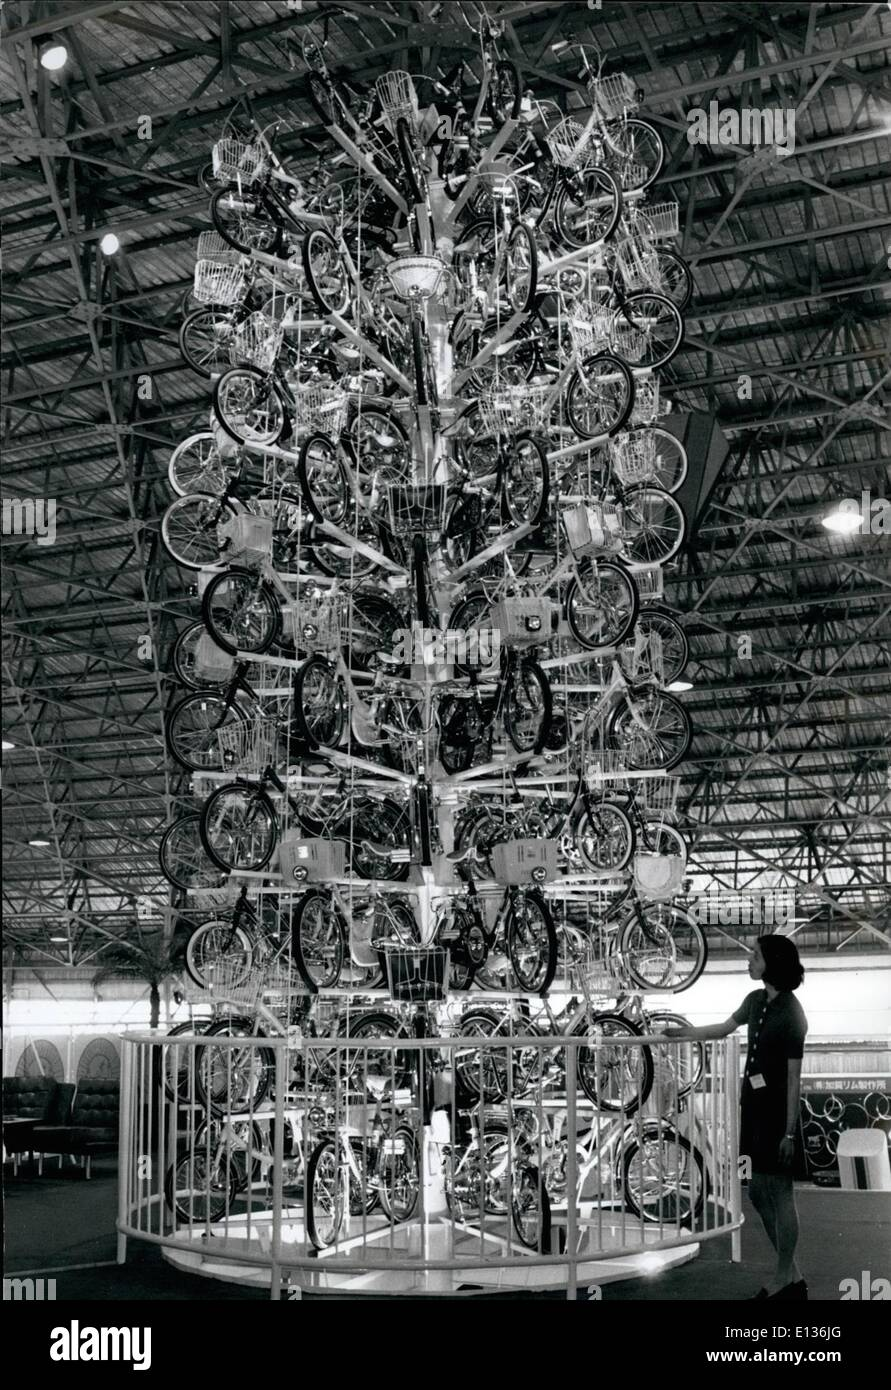 Feb. 28, 2012 - Bicycle ''Tree'' In Tokyo: Japanese-made bicycles are formed into the shape of a tree at the 9th International Trade Fair currently in progress in Tokyo. The bicycles will be given away as prizes when the fair closes. - Stock Image